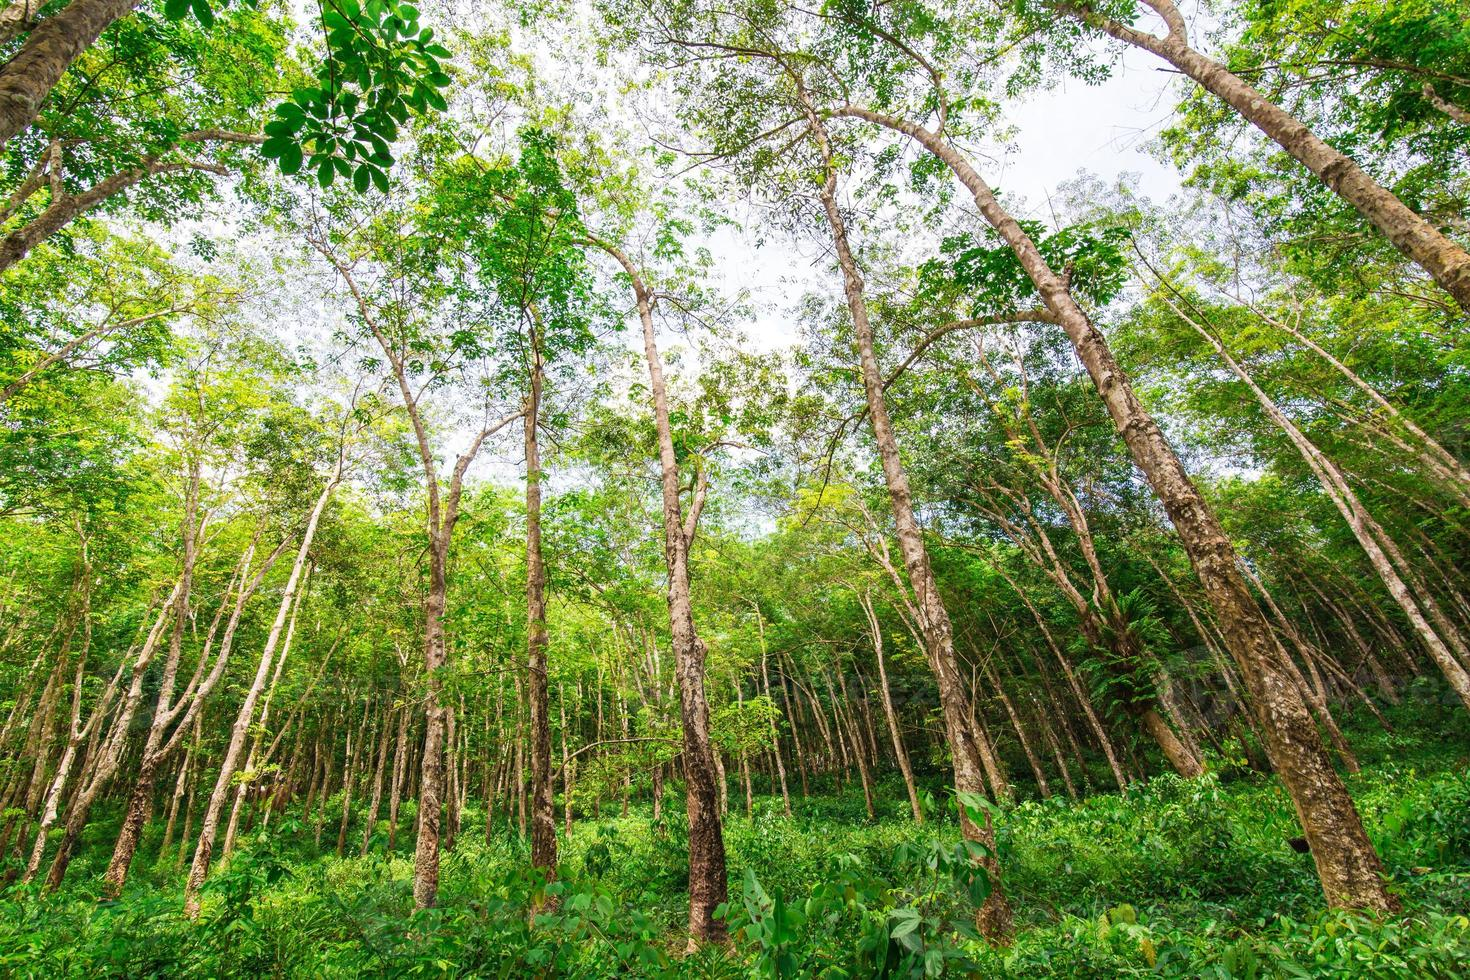 landscape of rubber trees photo